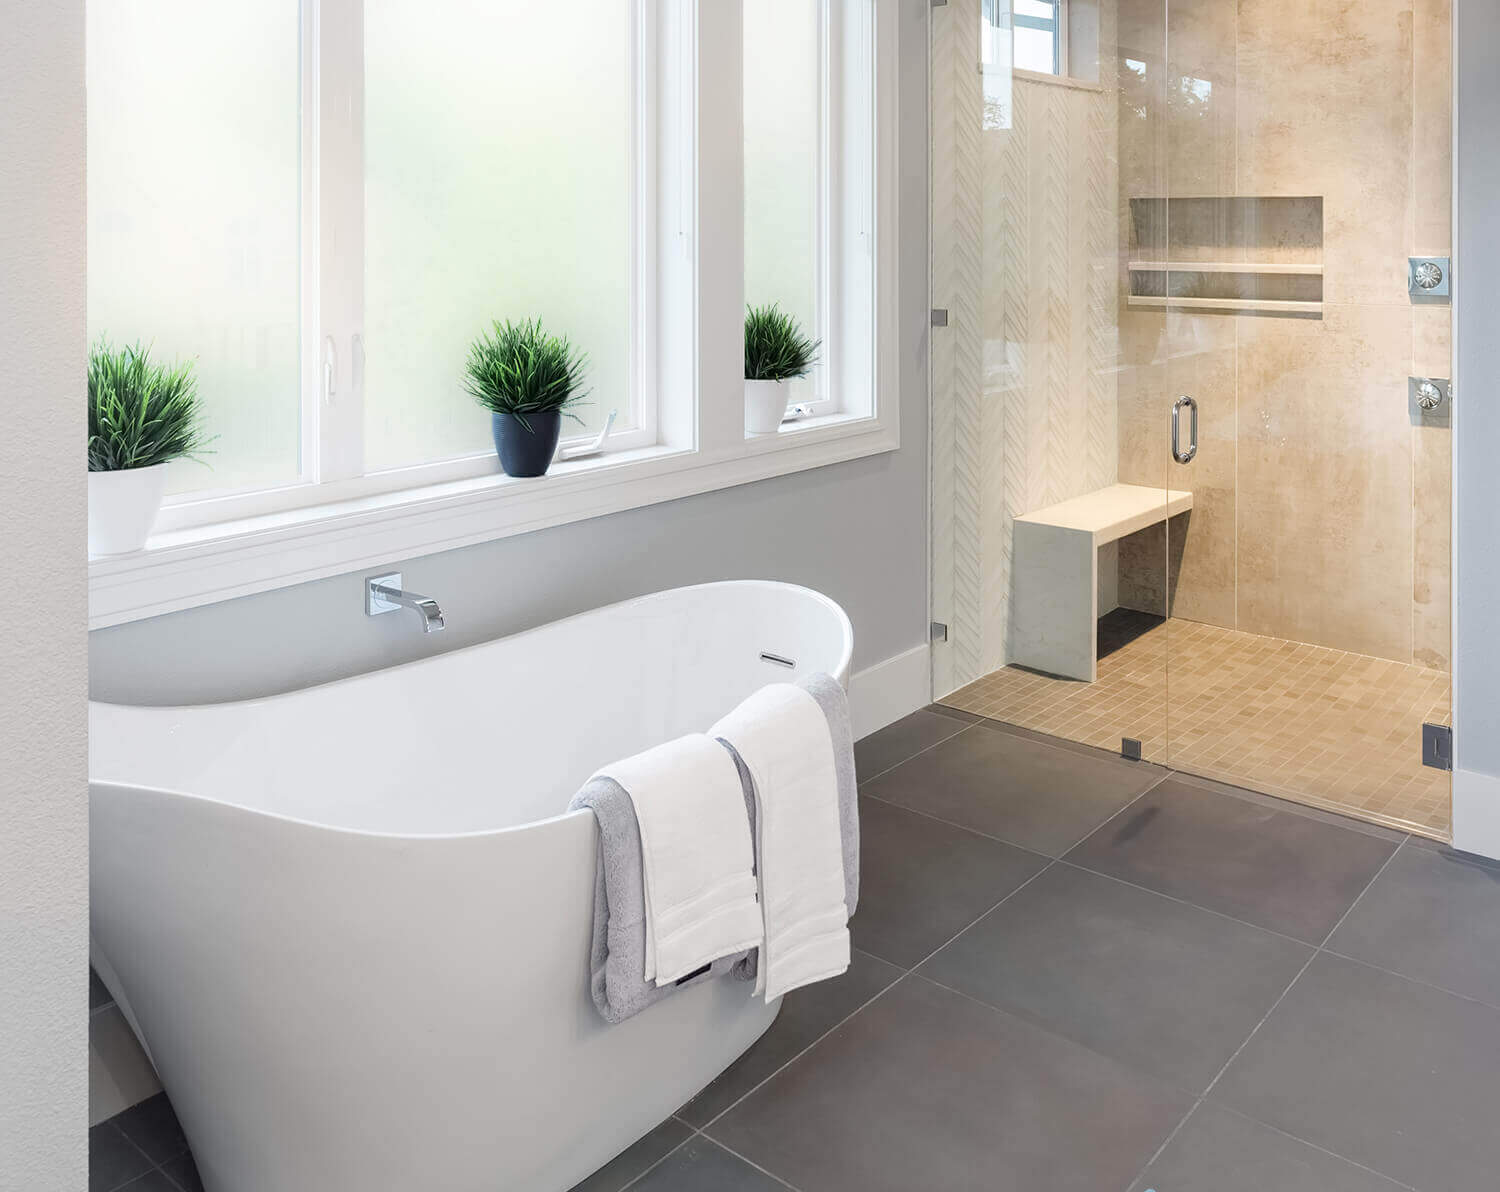 privacy glass window film - bathroom